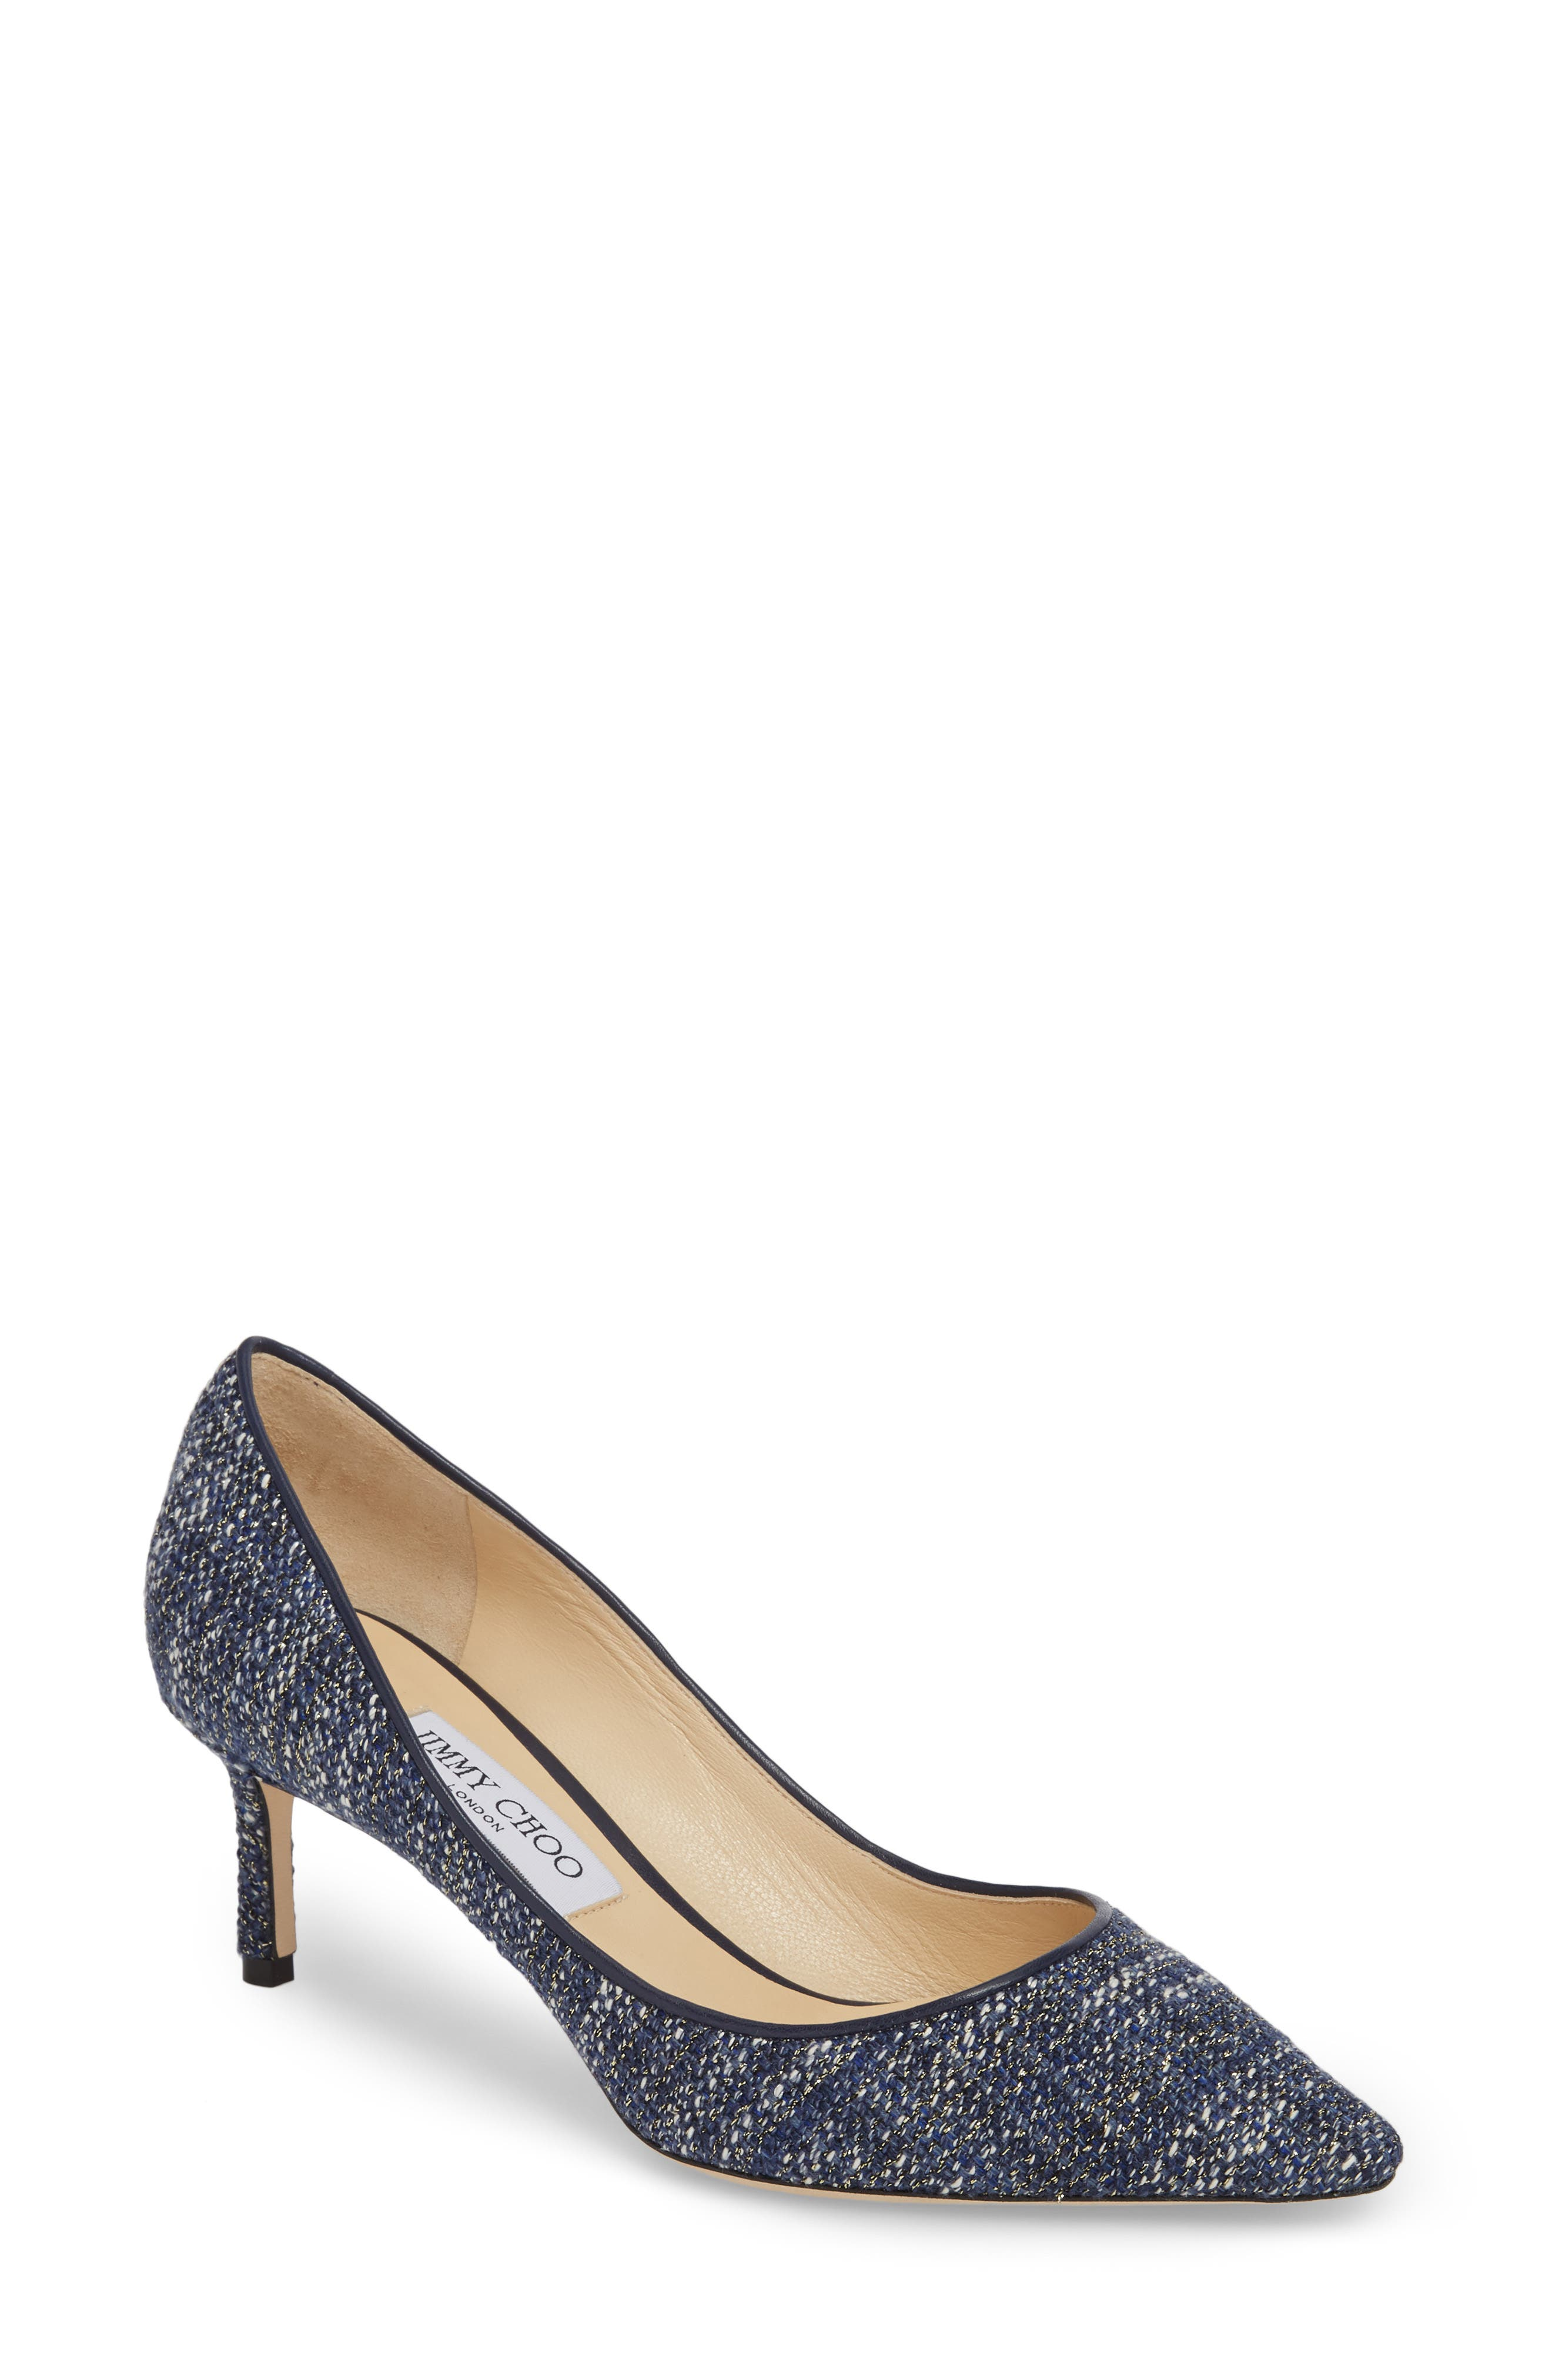 Romy Woven Pointy Toe Pump,                         Main,                         color, Navy Tweed